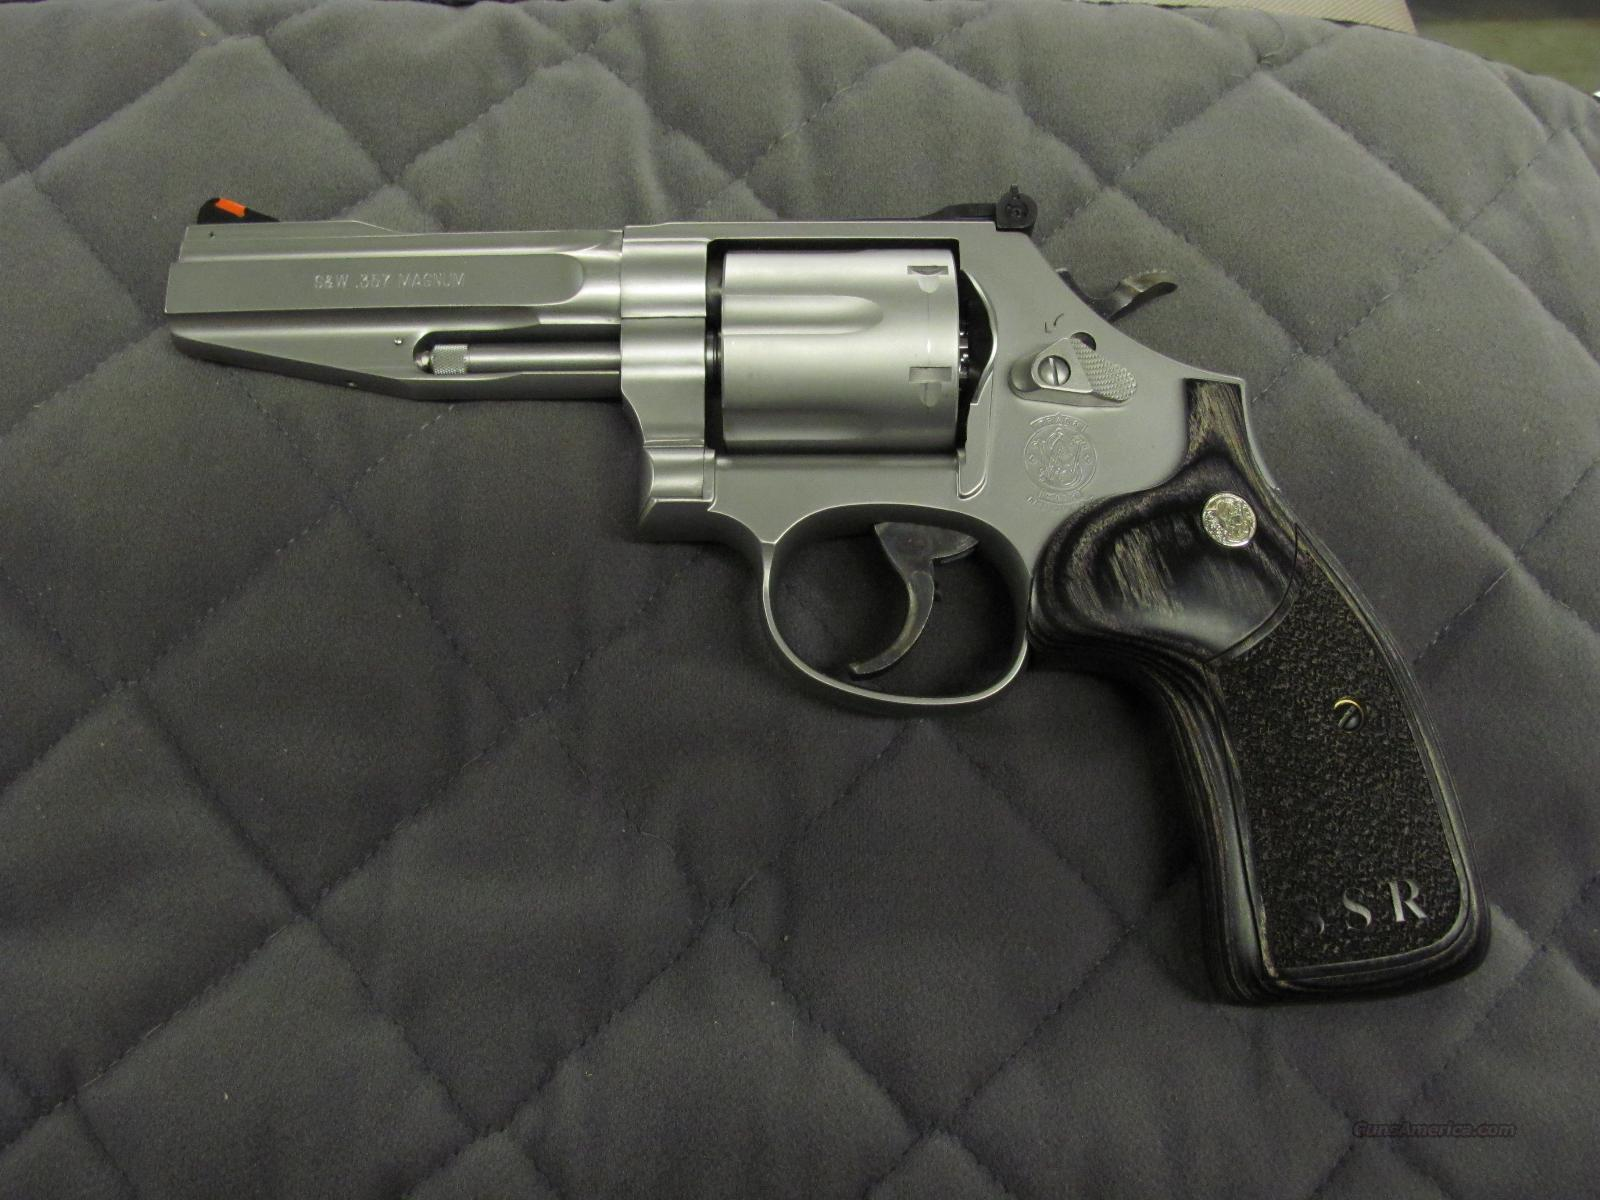 Smith & Wesson Model 686 SSR Pro Series 357 Magnum  **NEW**  Guns > Pistols > Smith & Wesson Revolvers > Full Frame Revolver